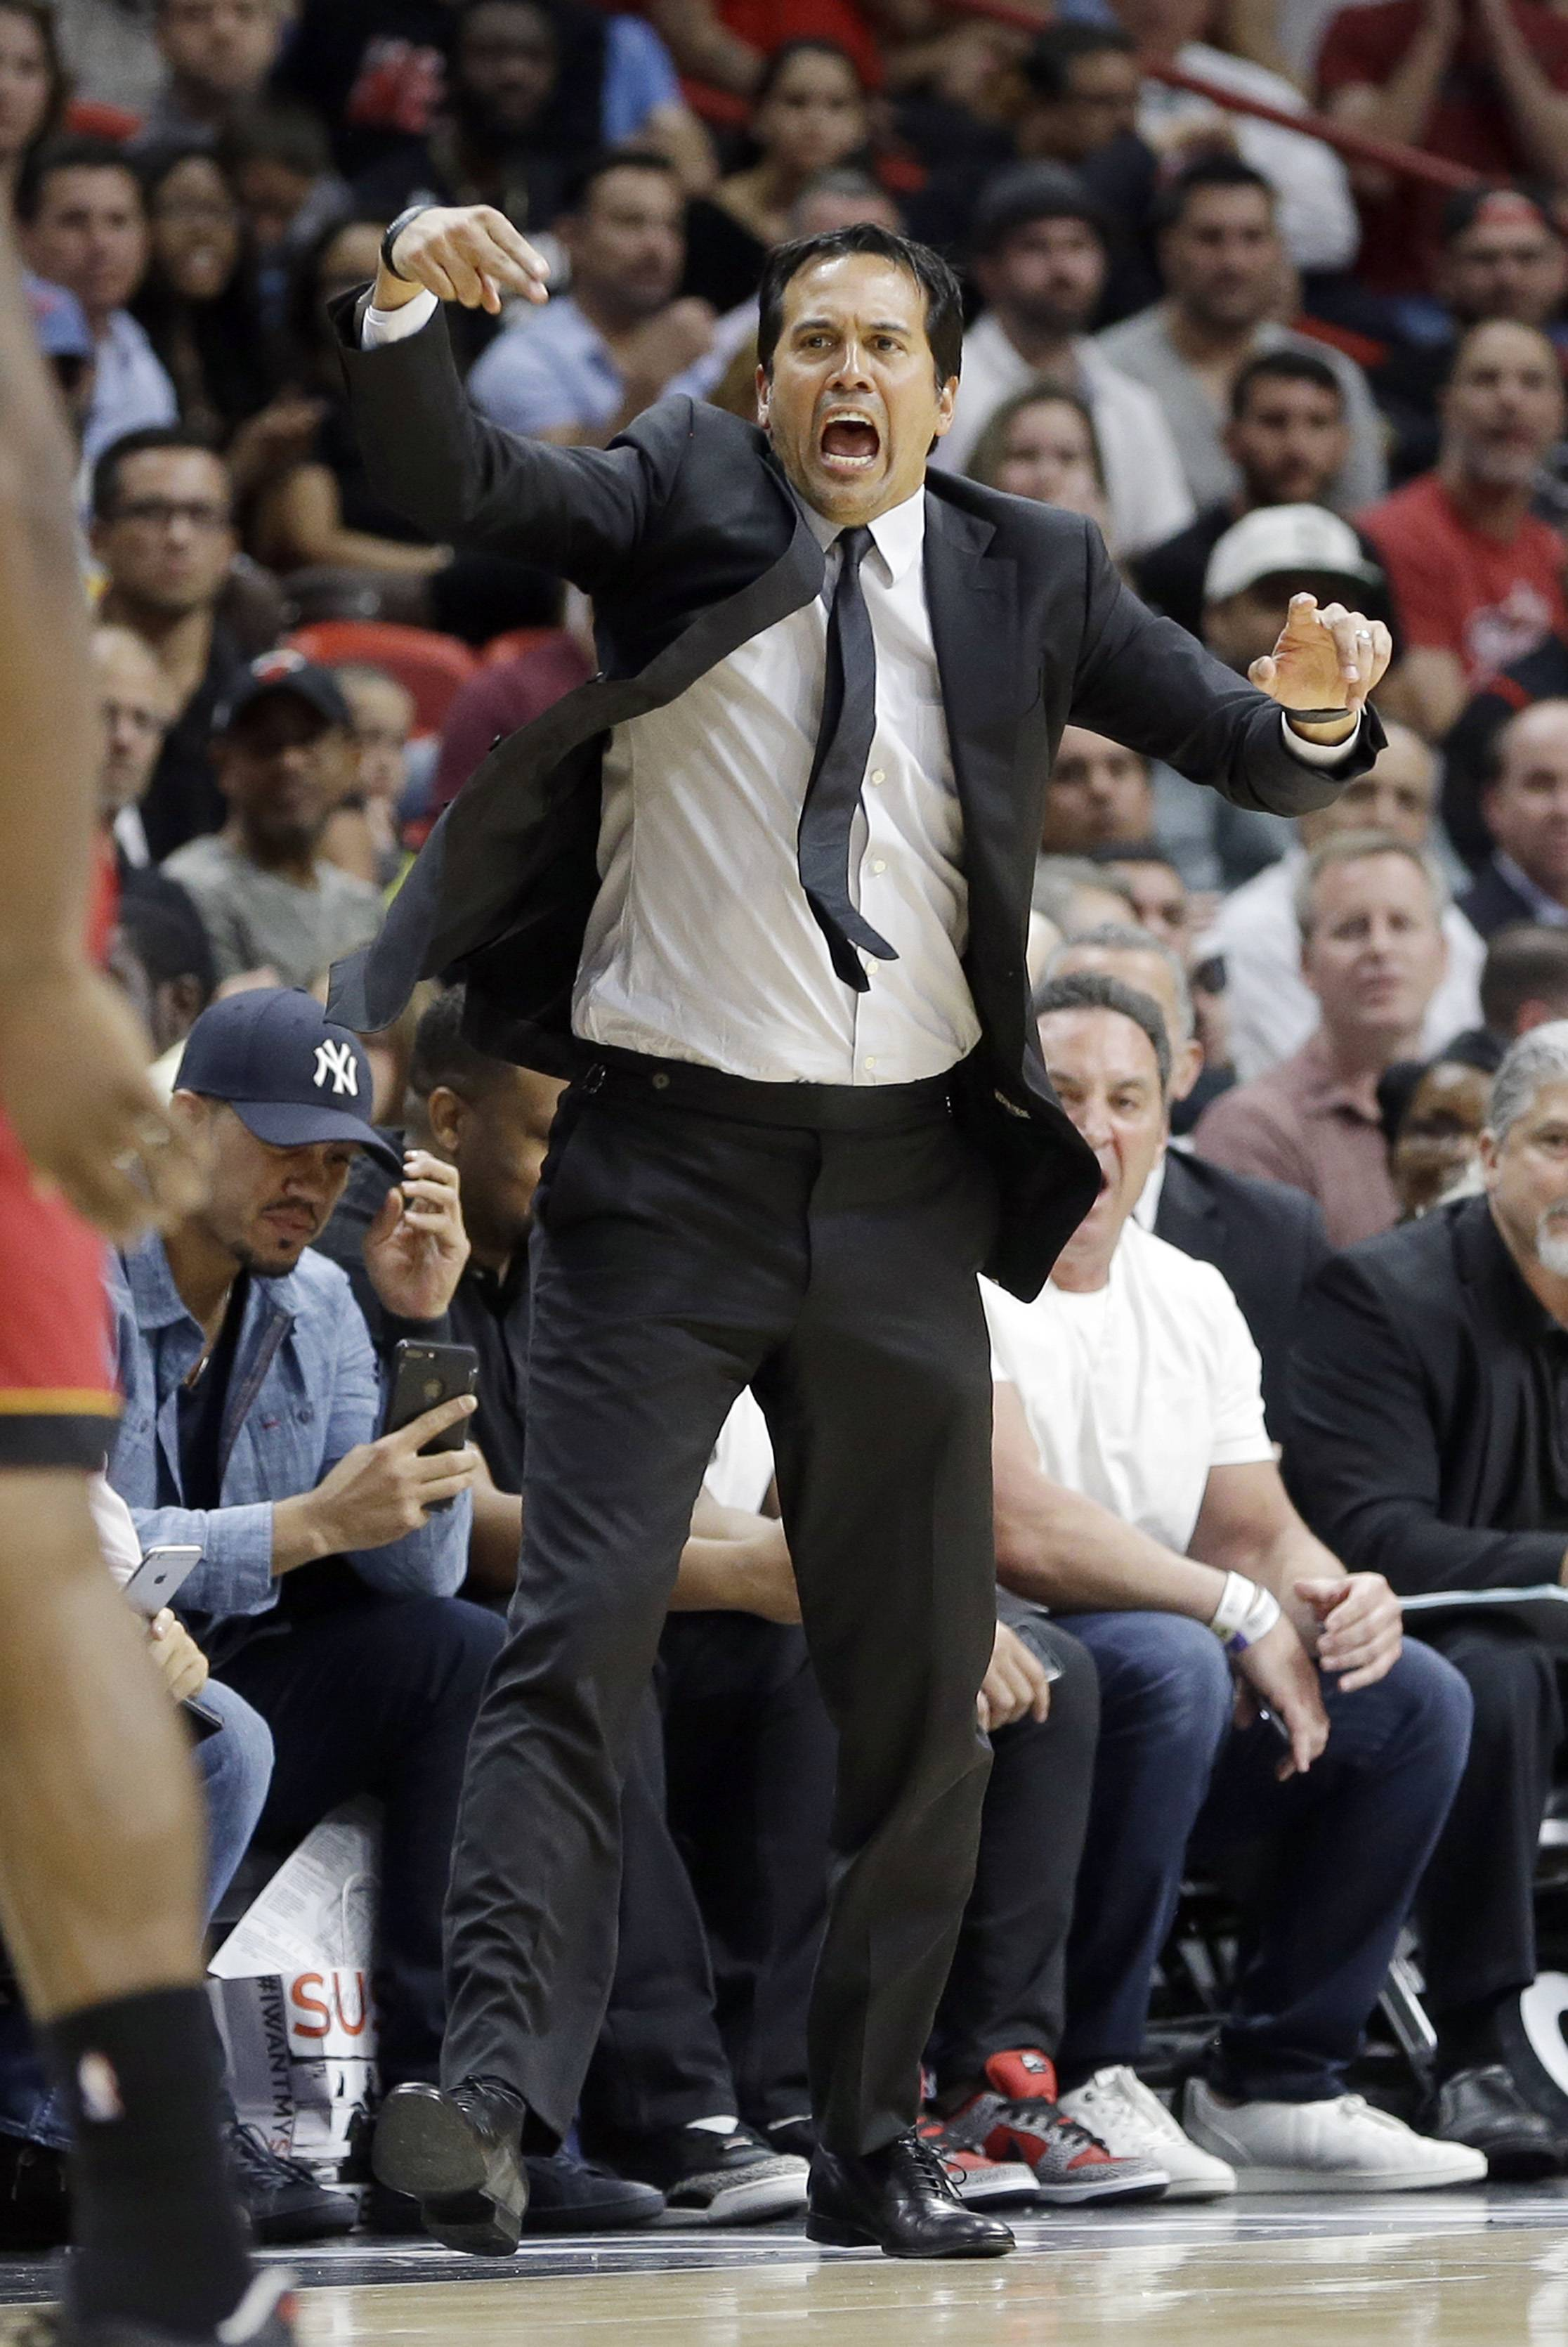 Miami Heat head coach Erik Spoelstra shouts instructions to his players against the Charlotte Hornets in the second half of an NBA basketball game, Wednesday, March 8, 2017, in Miami. The Heat won 108-101.